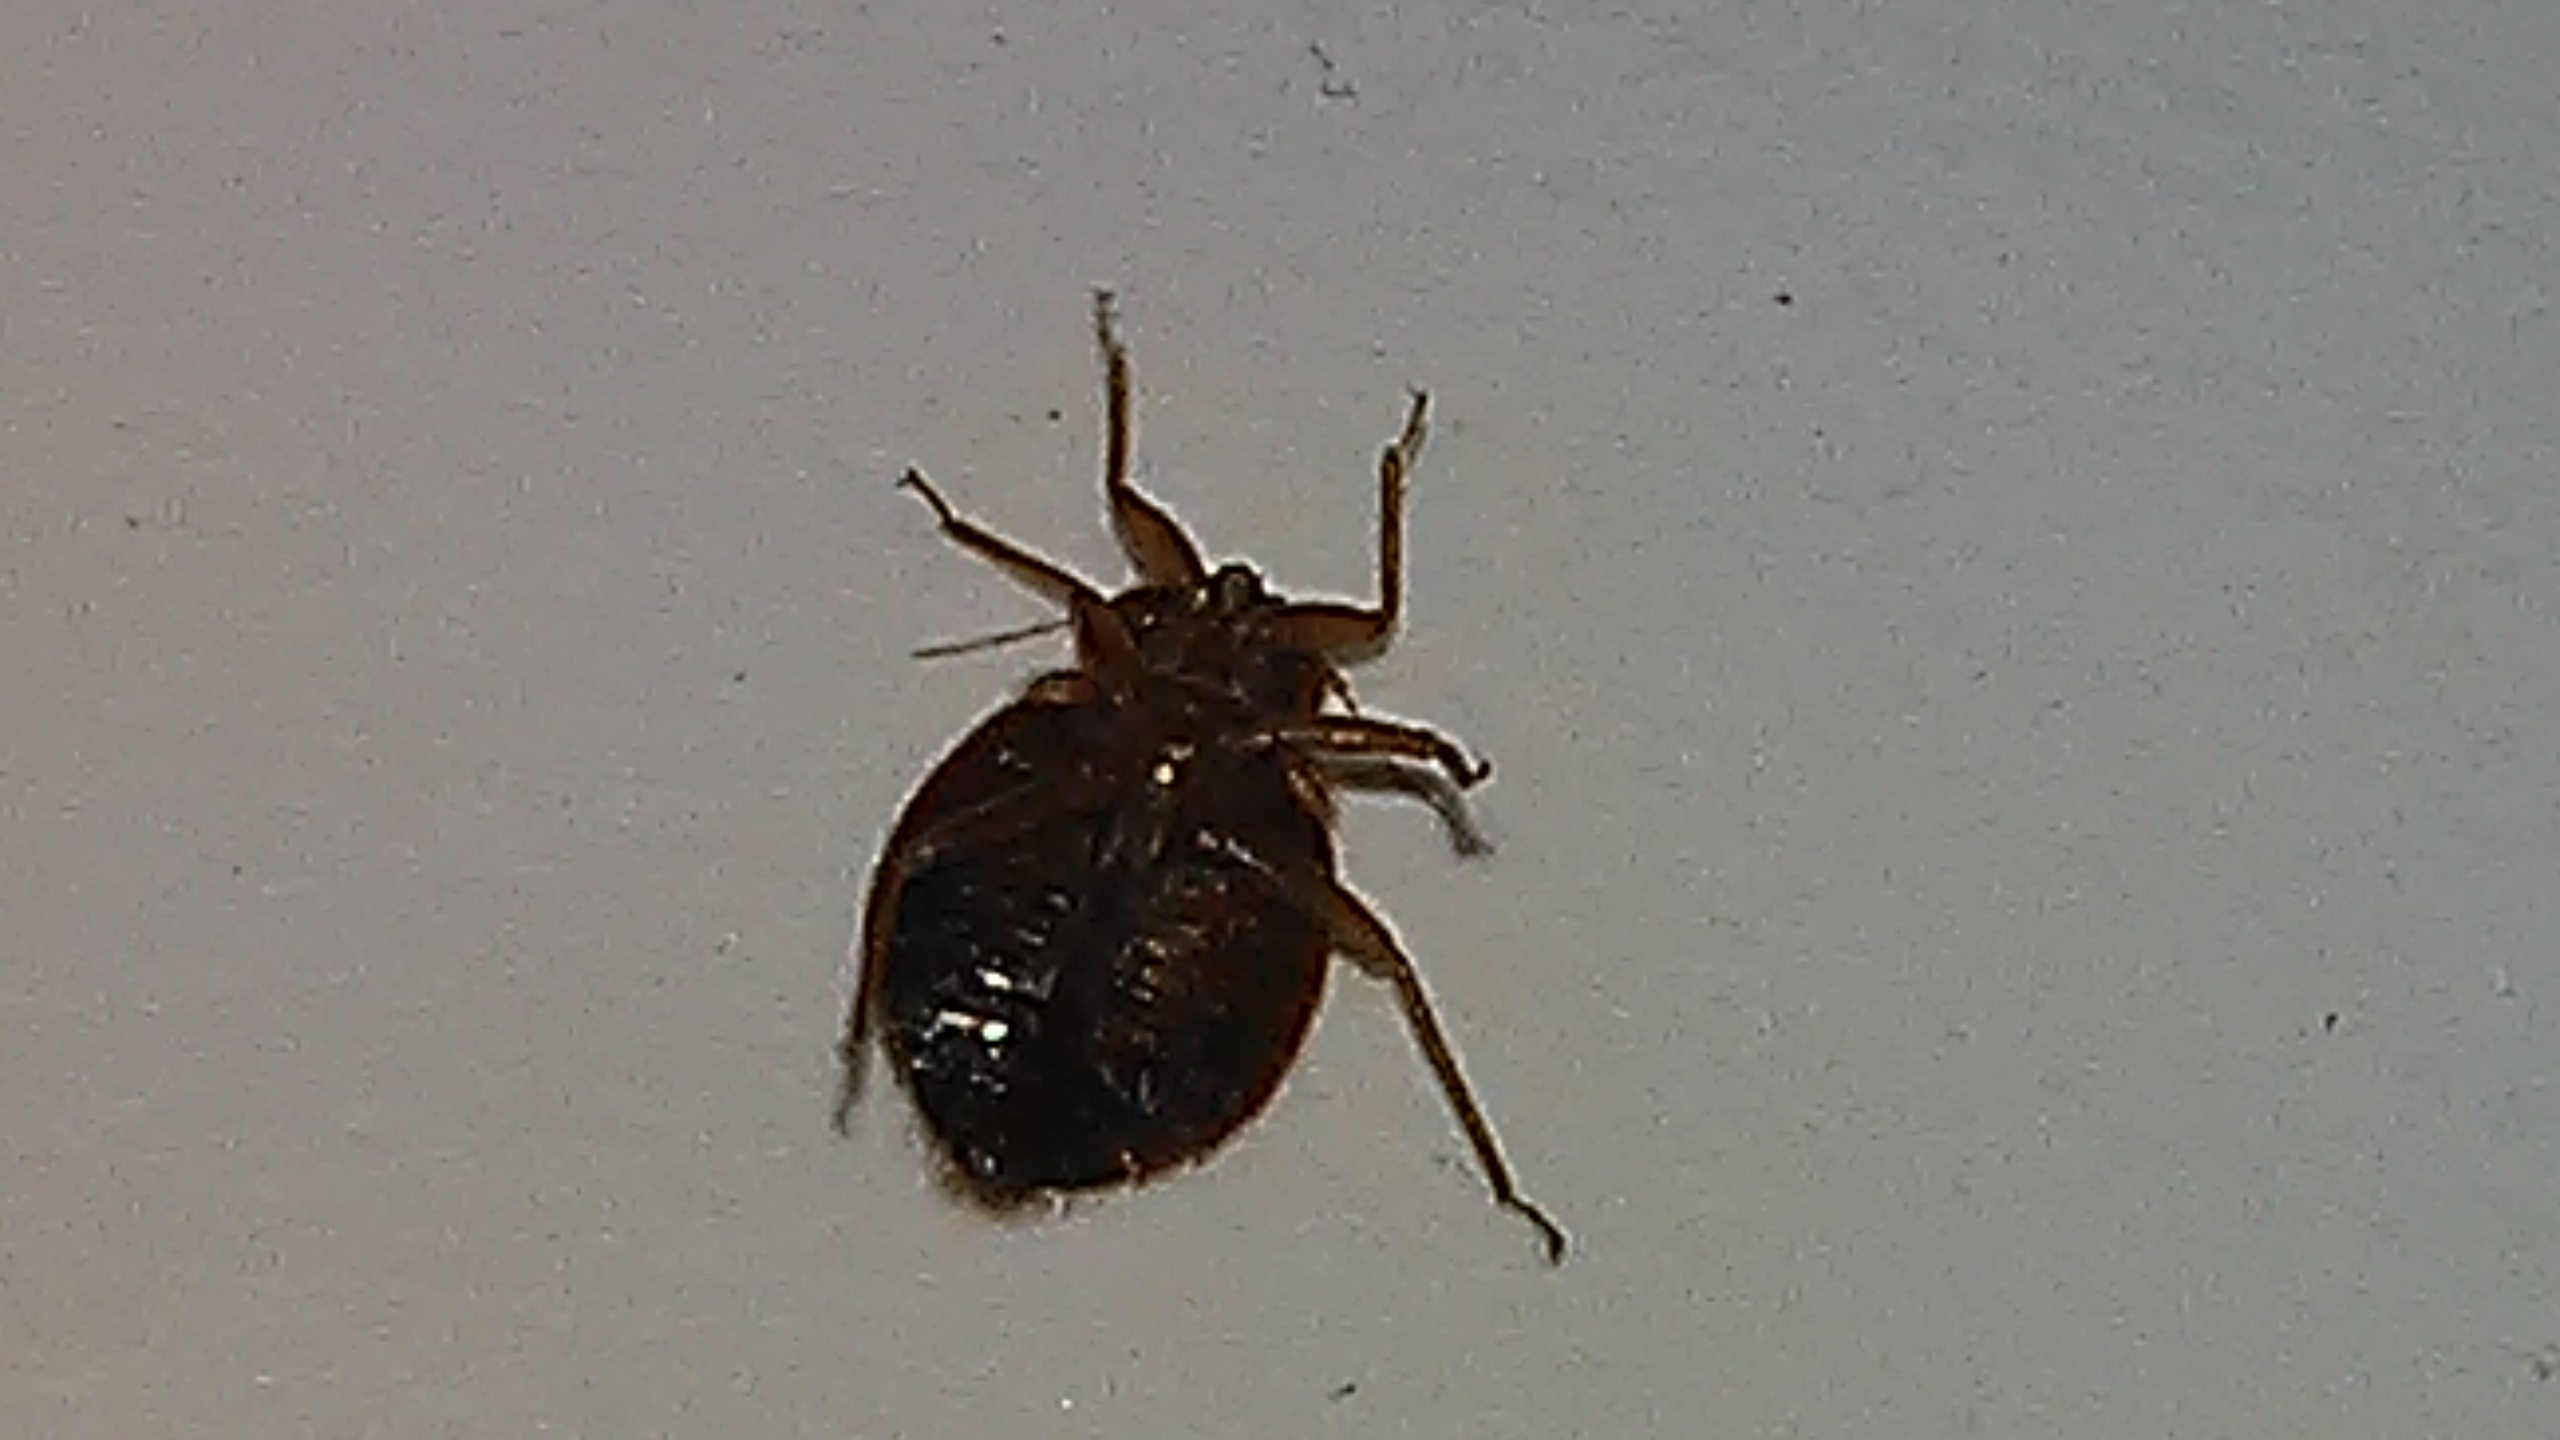 Bed bug close up - photo#28